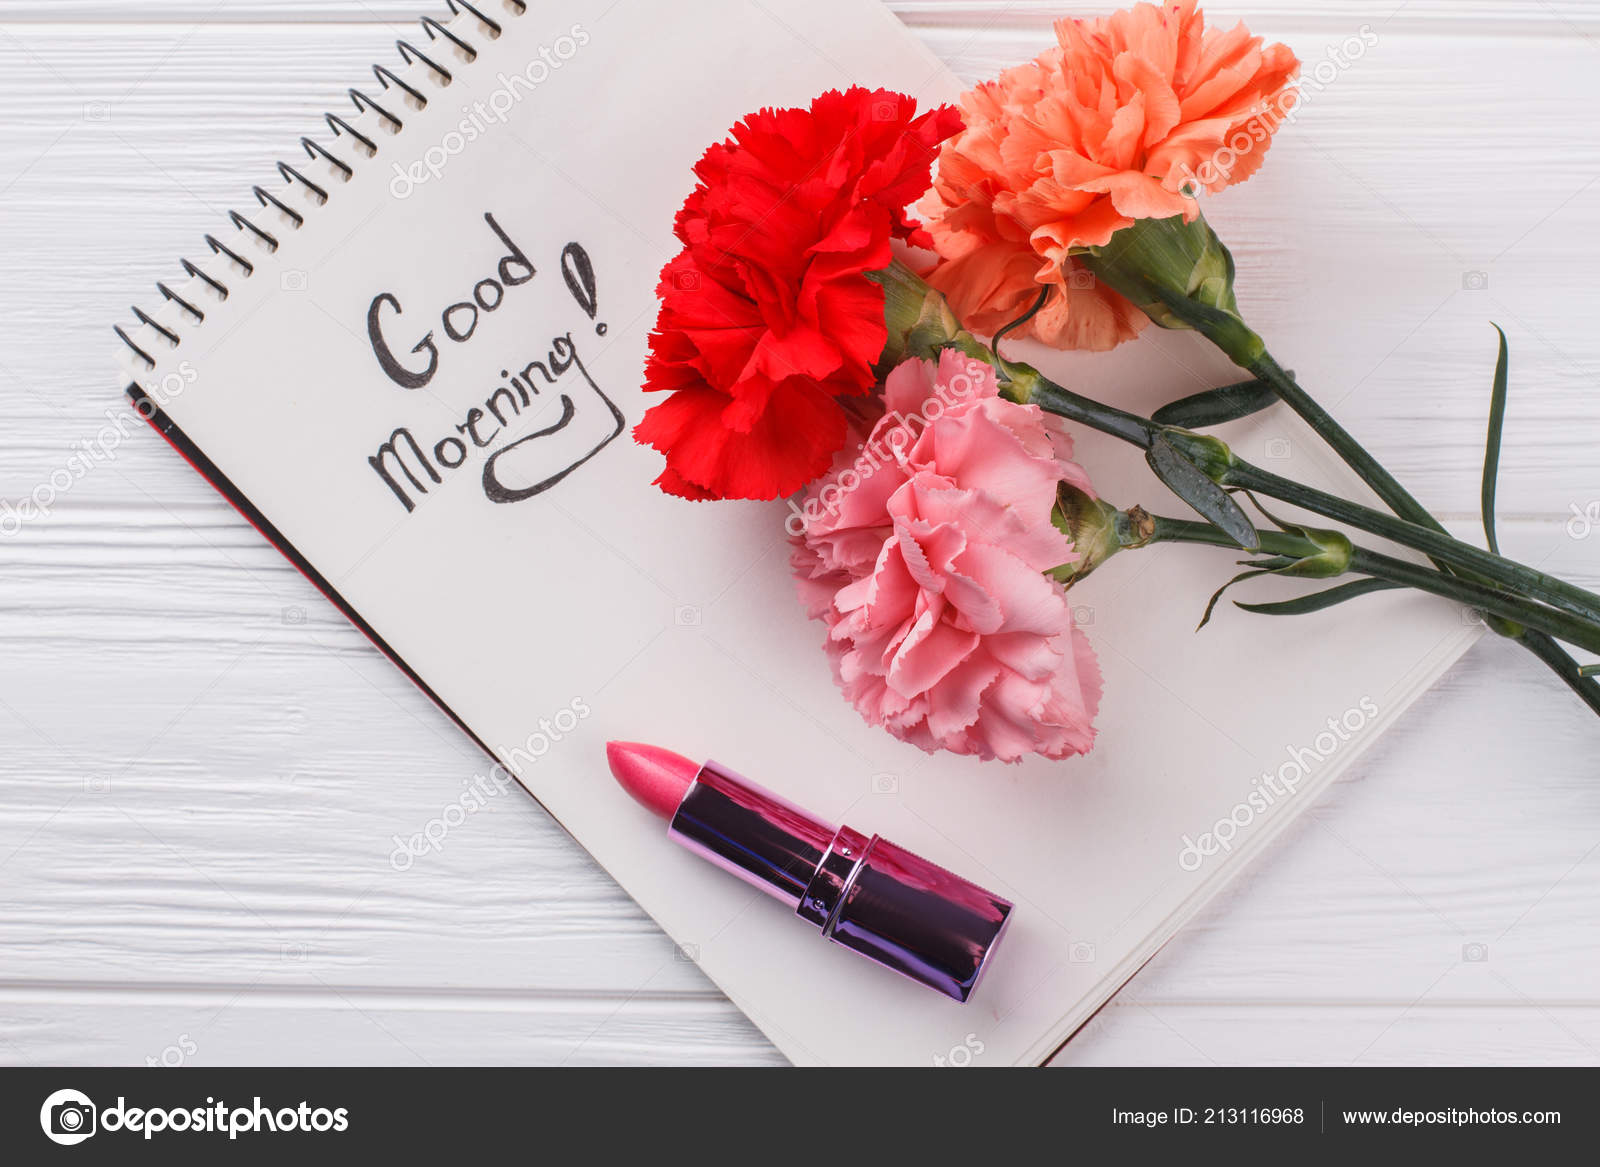 Carnation Flowers Good Morning Wish And Lipstic Stock Photo